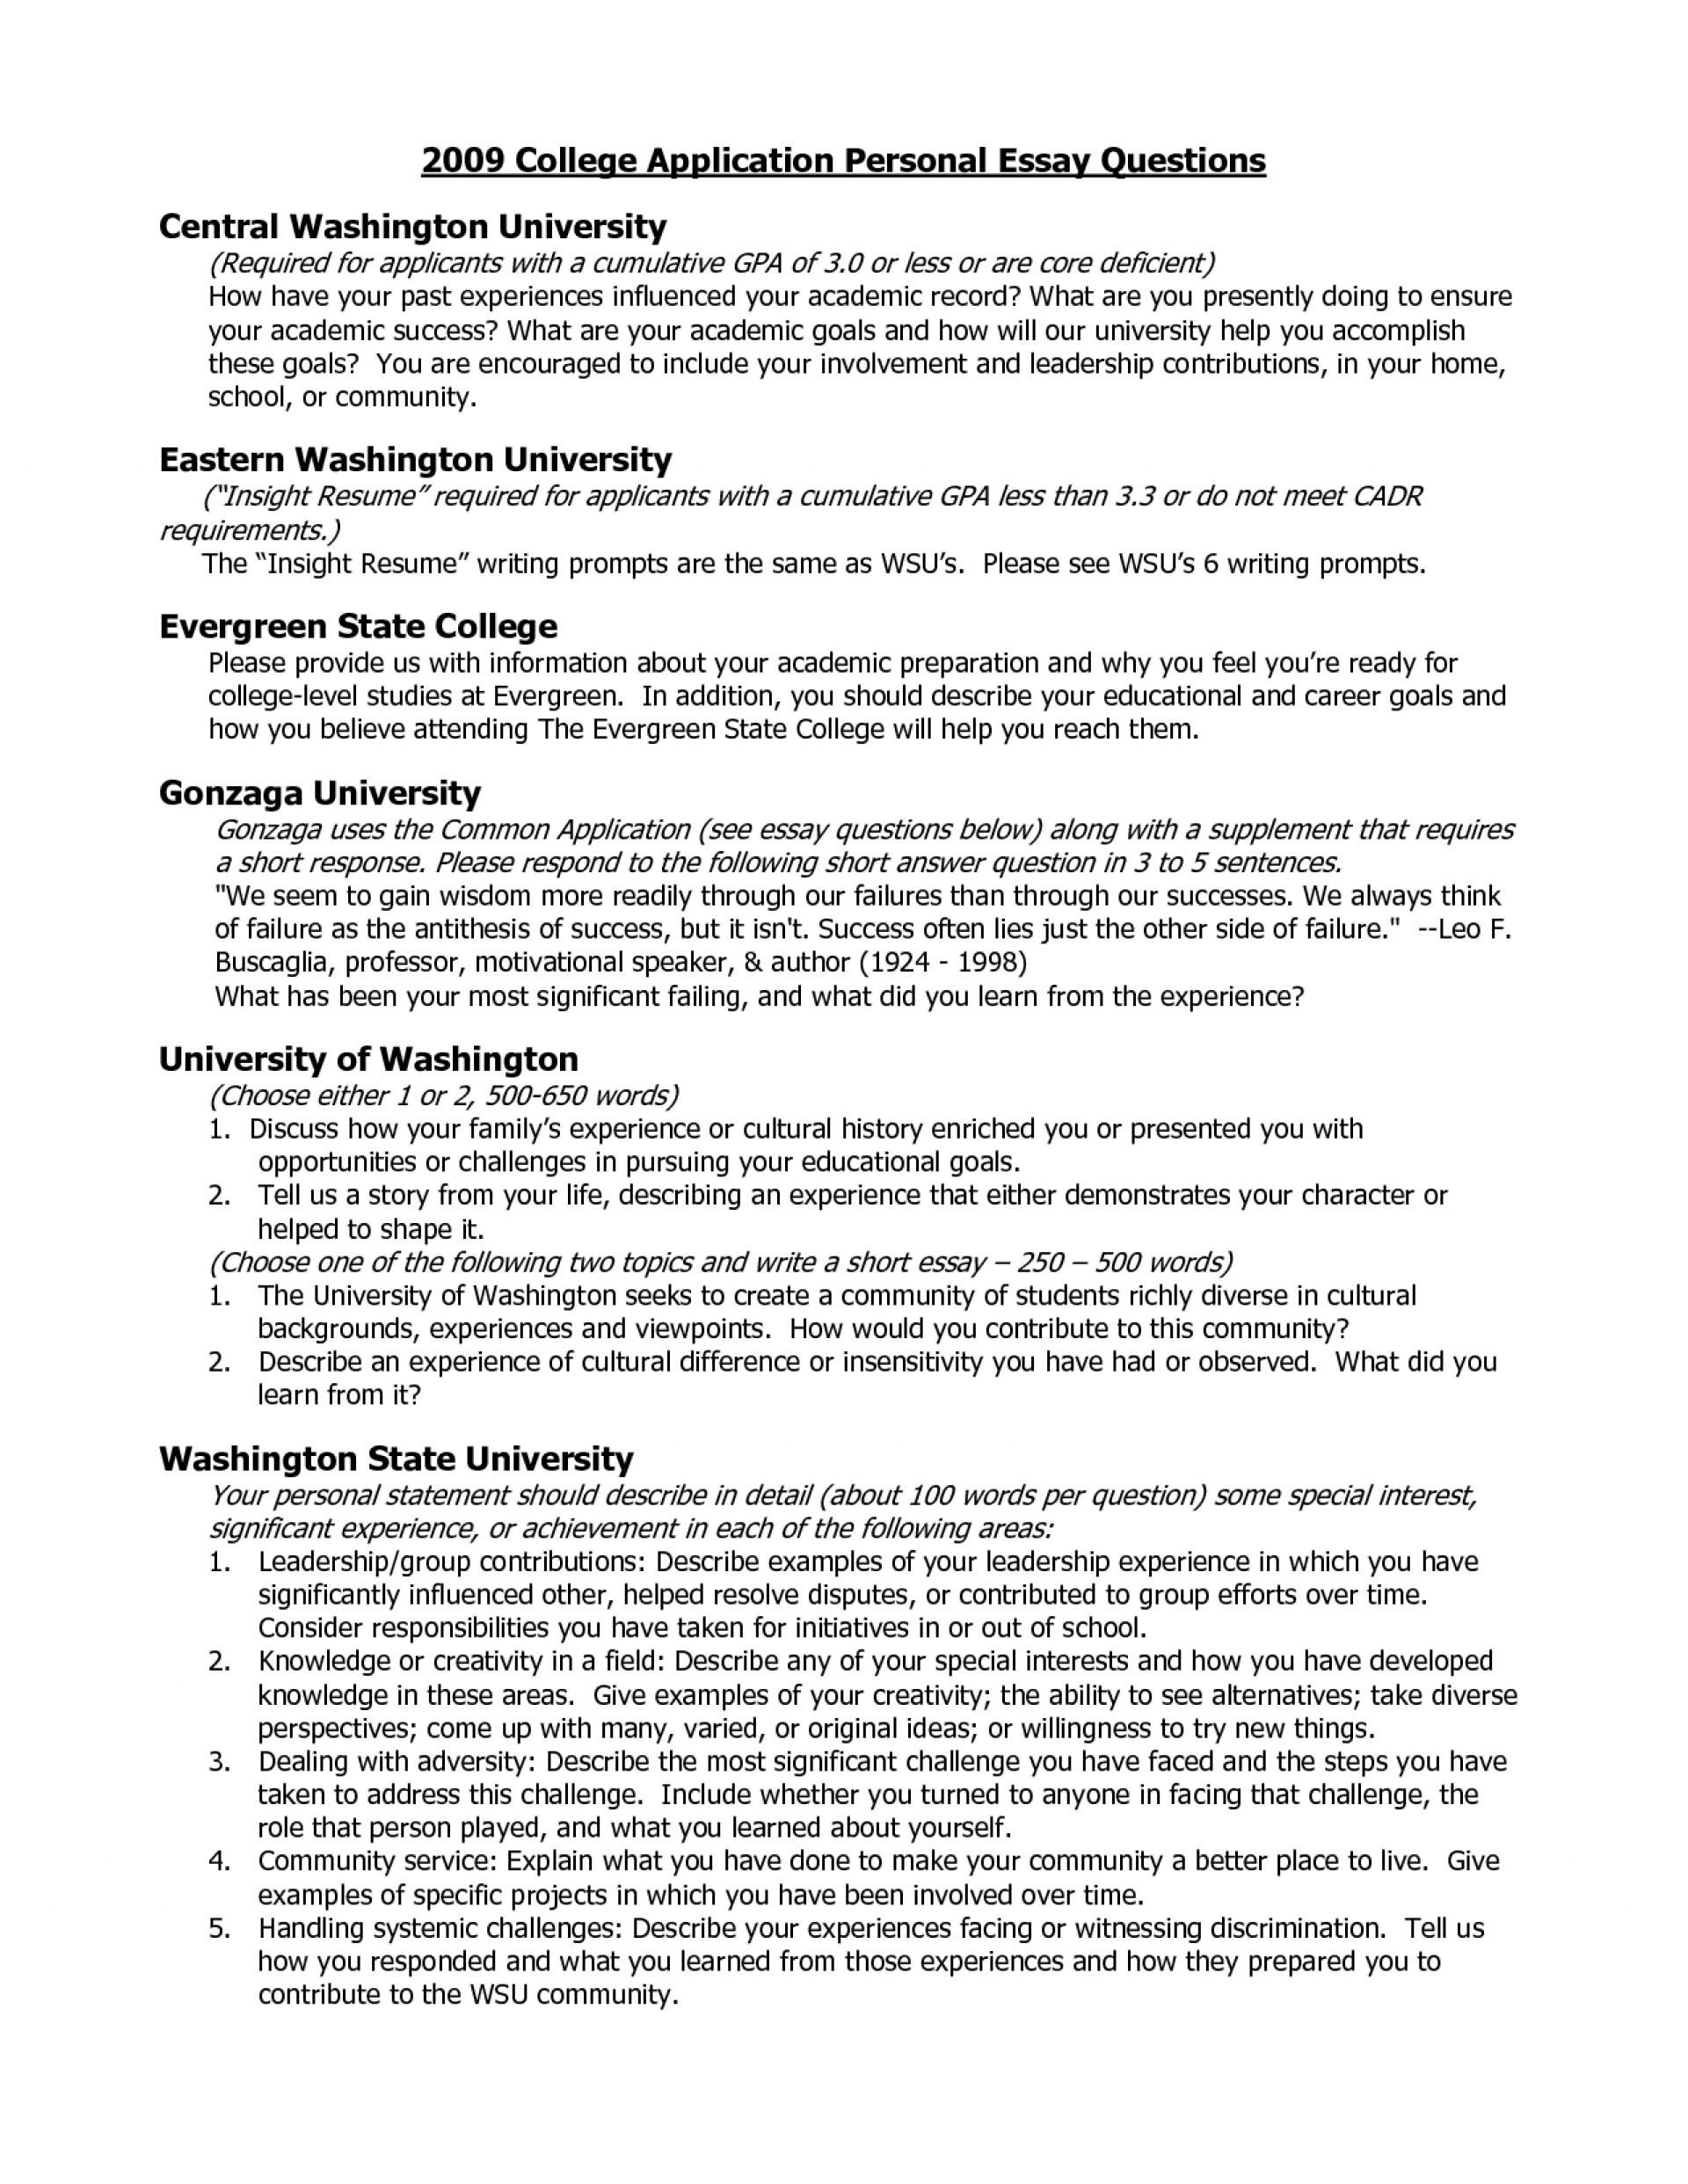 003 Essay Example Stanford Prompts Common College Application Questions Custom Writing Service Fvqnl Typical Examples Unique Best Weird Phenomenal 1920